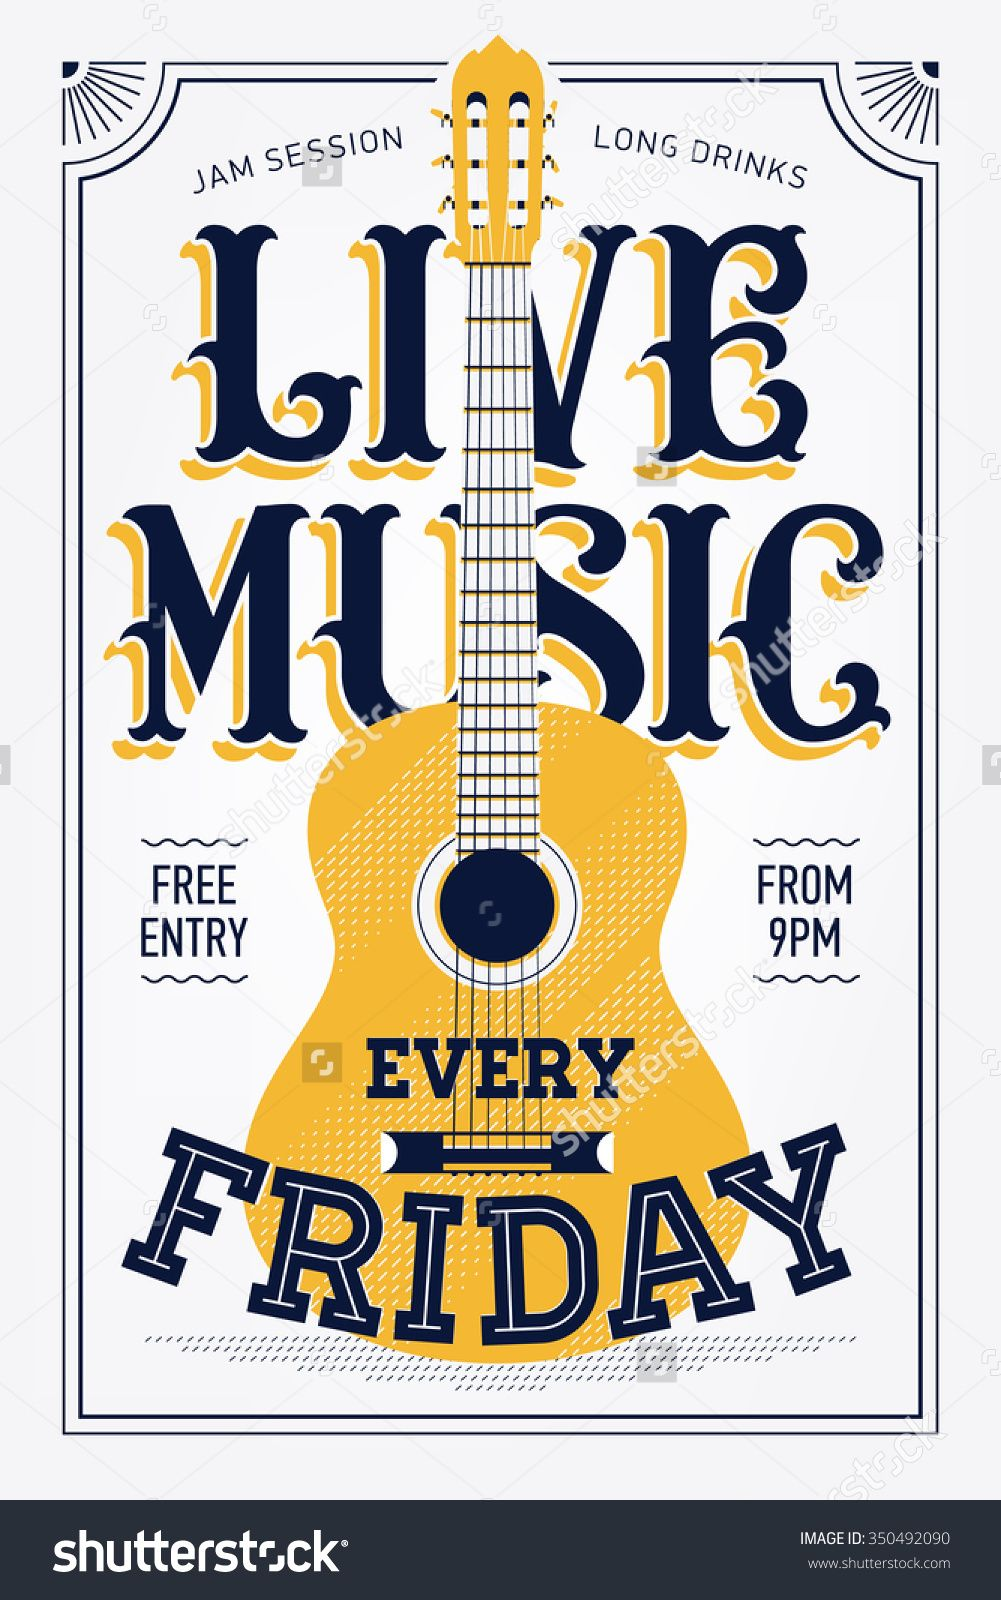 Vintage Live Music Every Friday Vector Poster Template. Ideal For ...